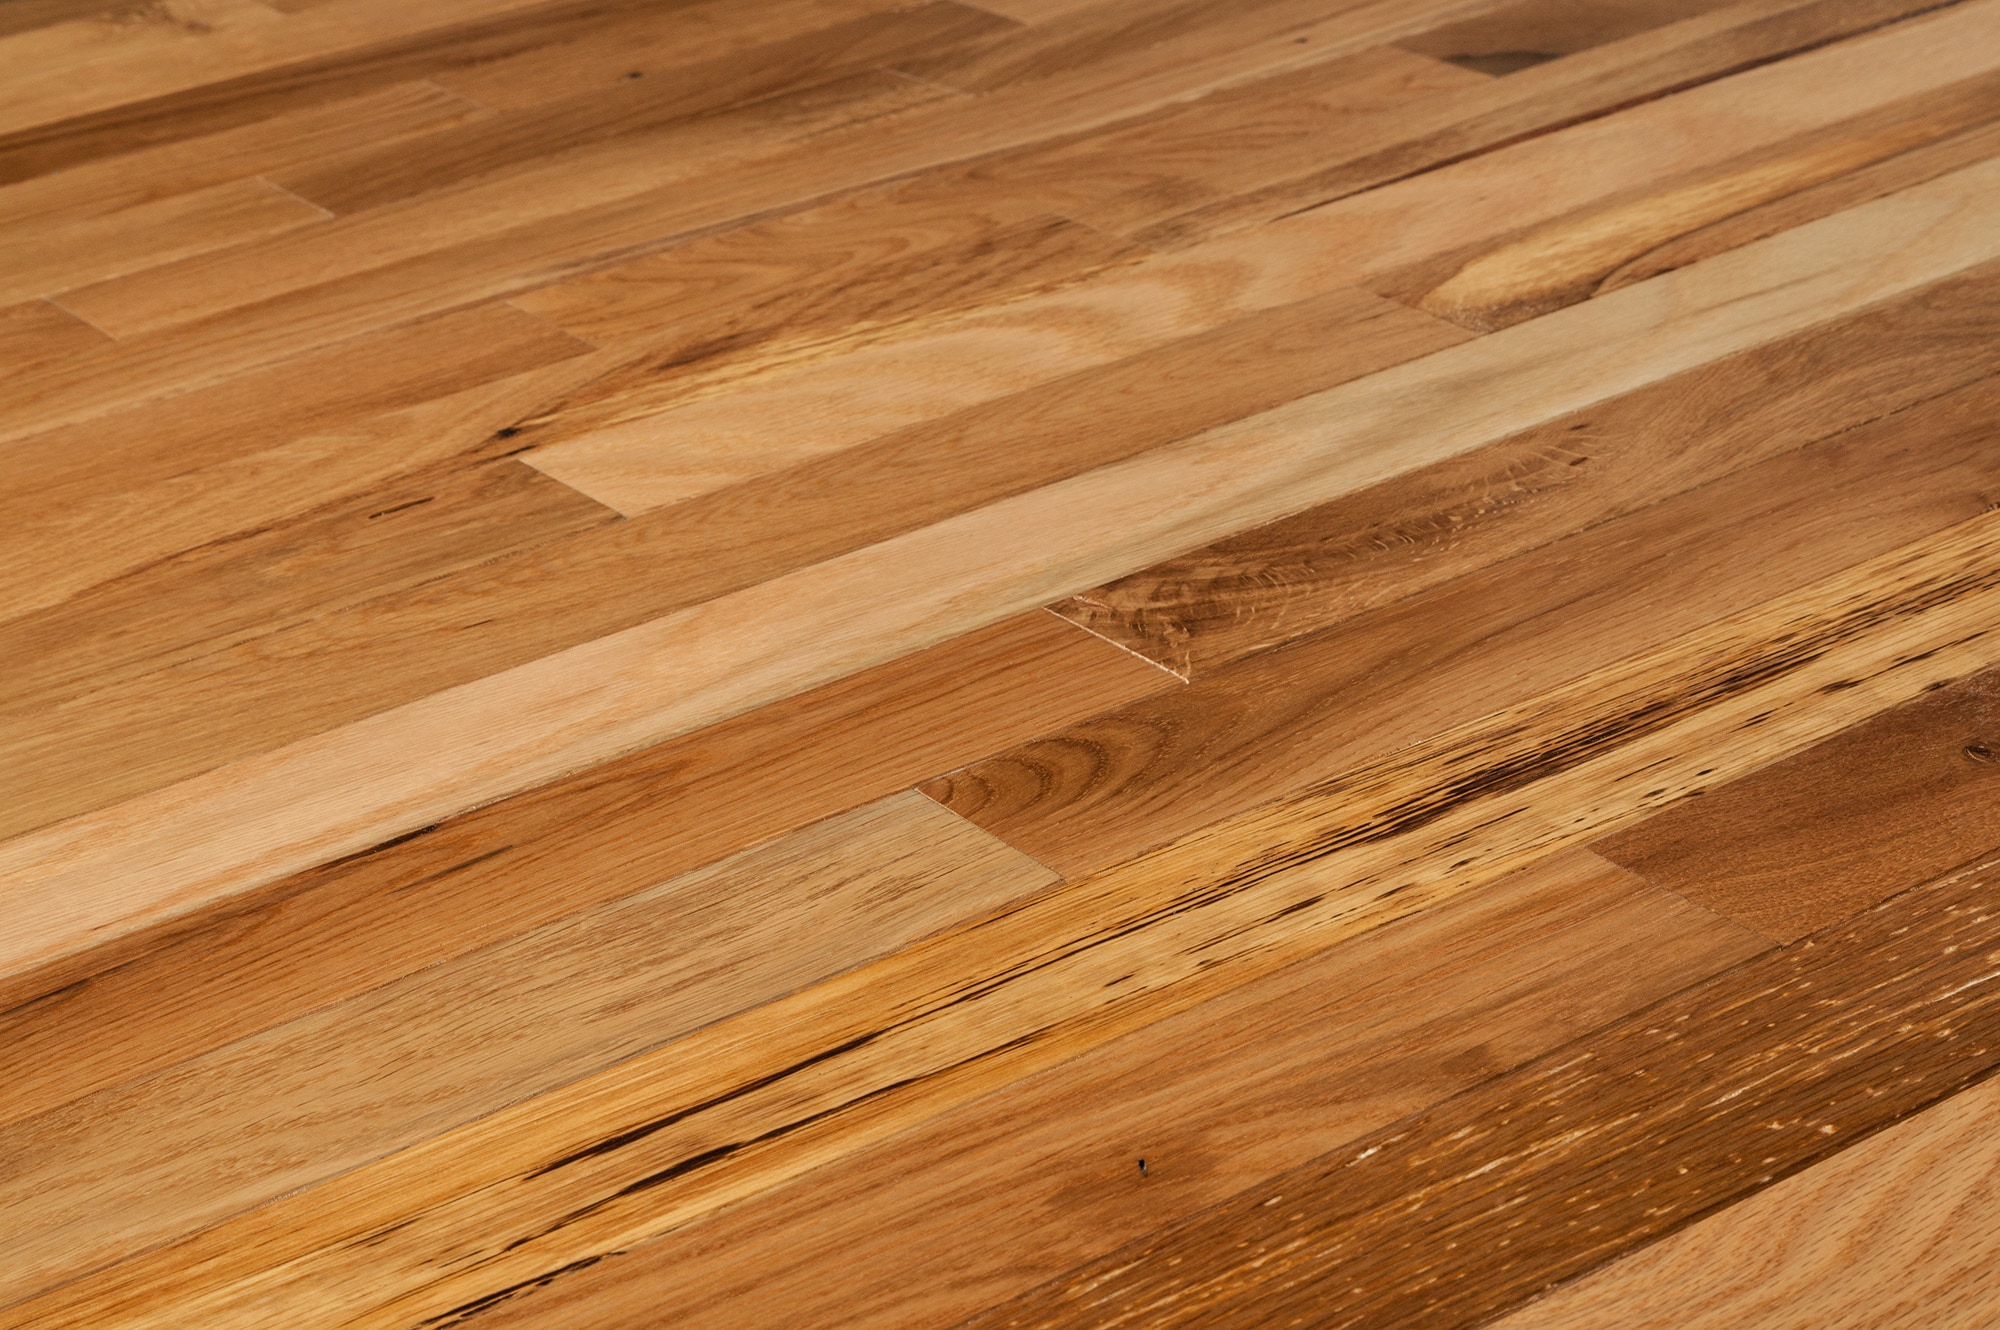 Jasper hardwood prefinished oak collection natural oak for Prefinished flooring